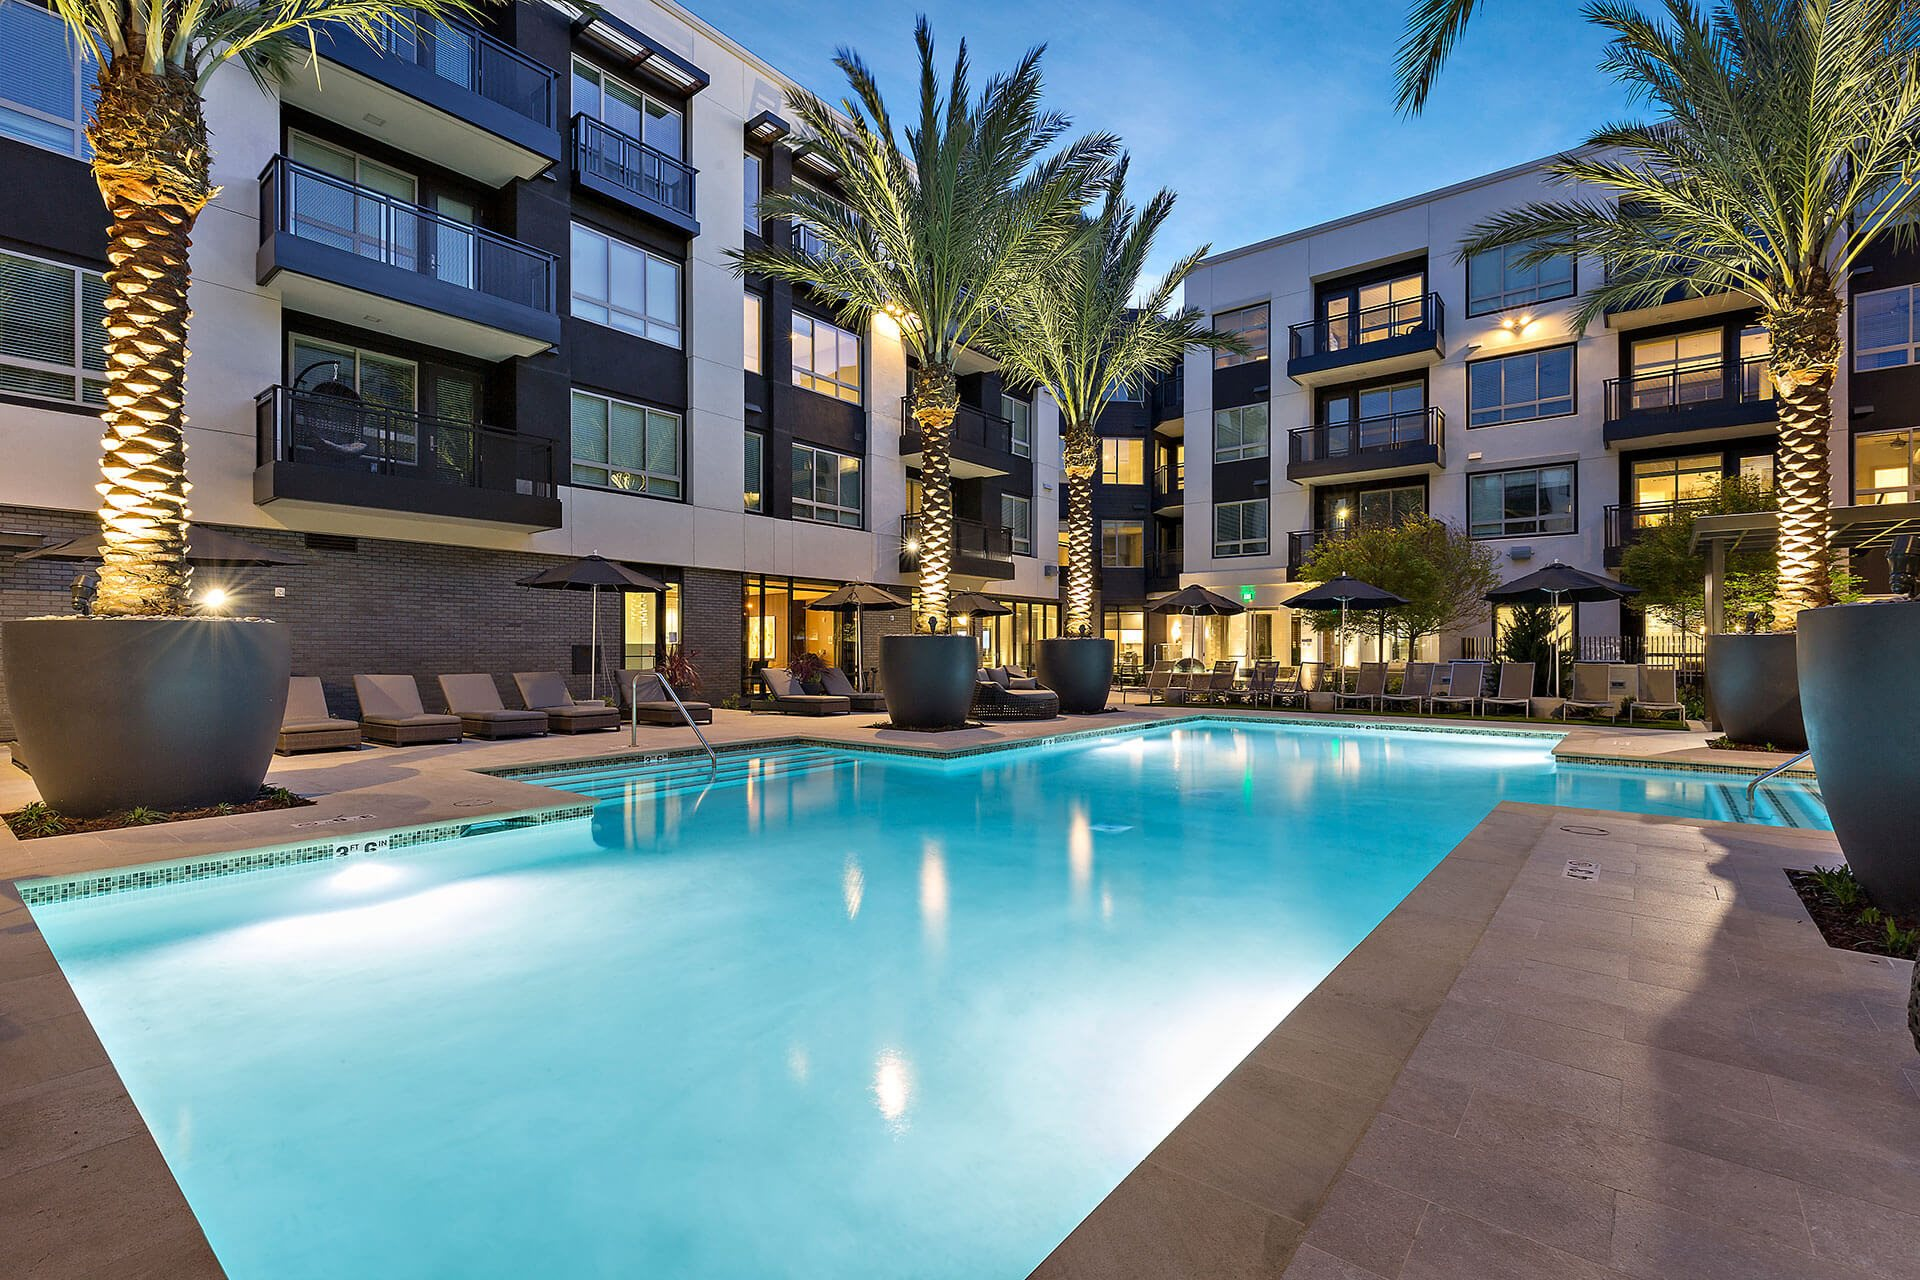 Resort pool, at Cannery Park by Windsor, 415 E Taylor St, San Jose